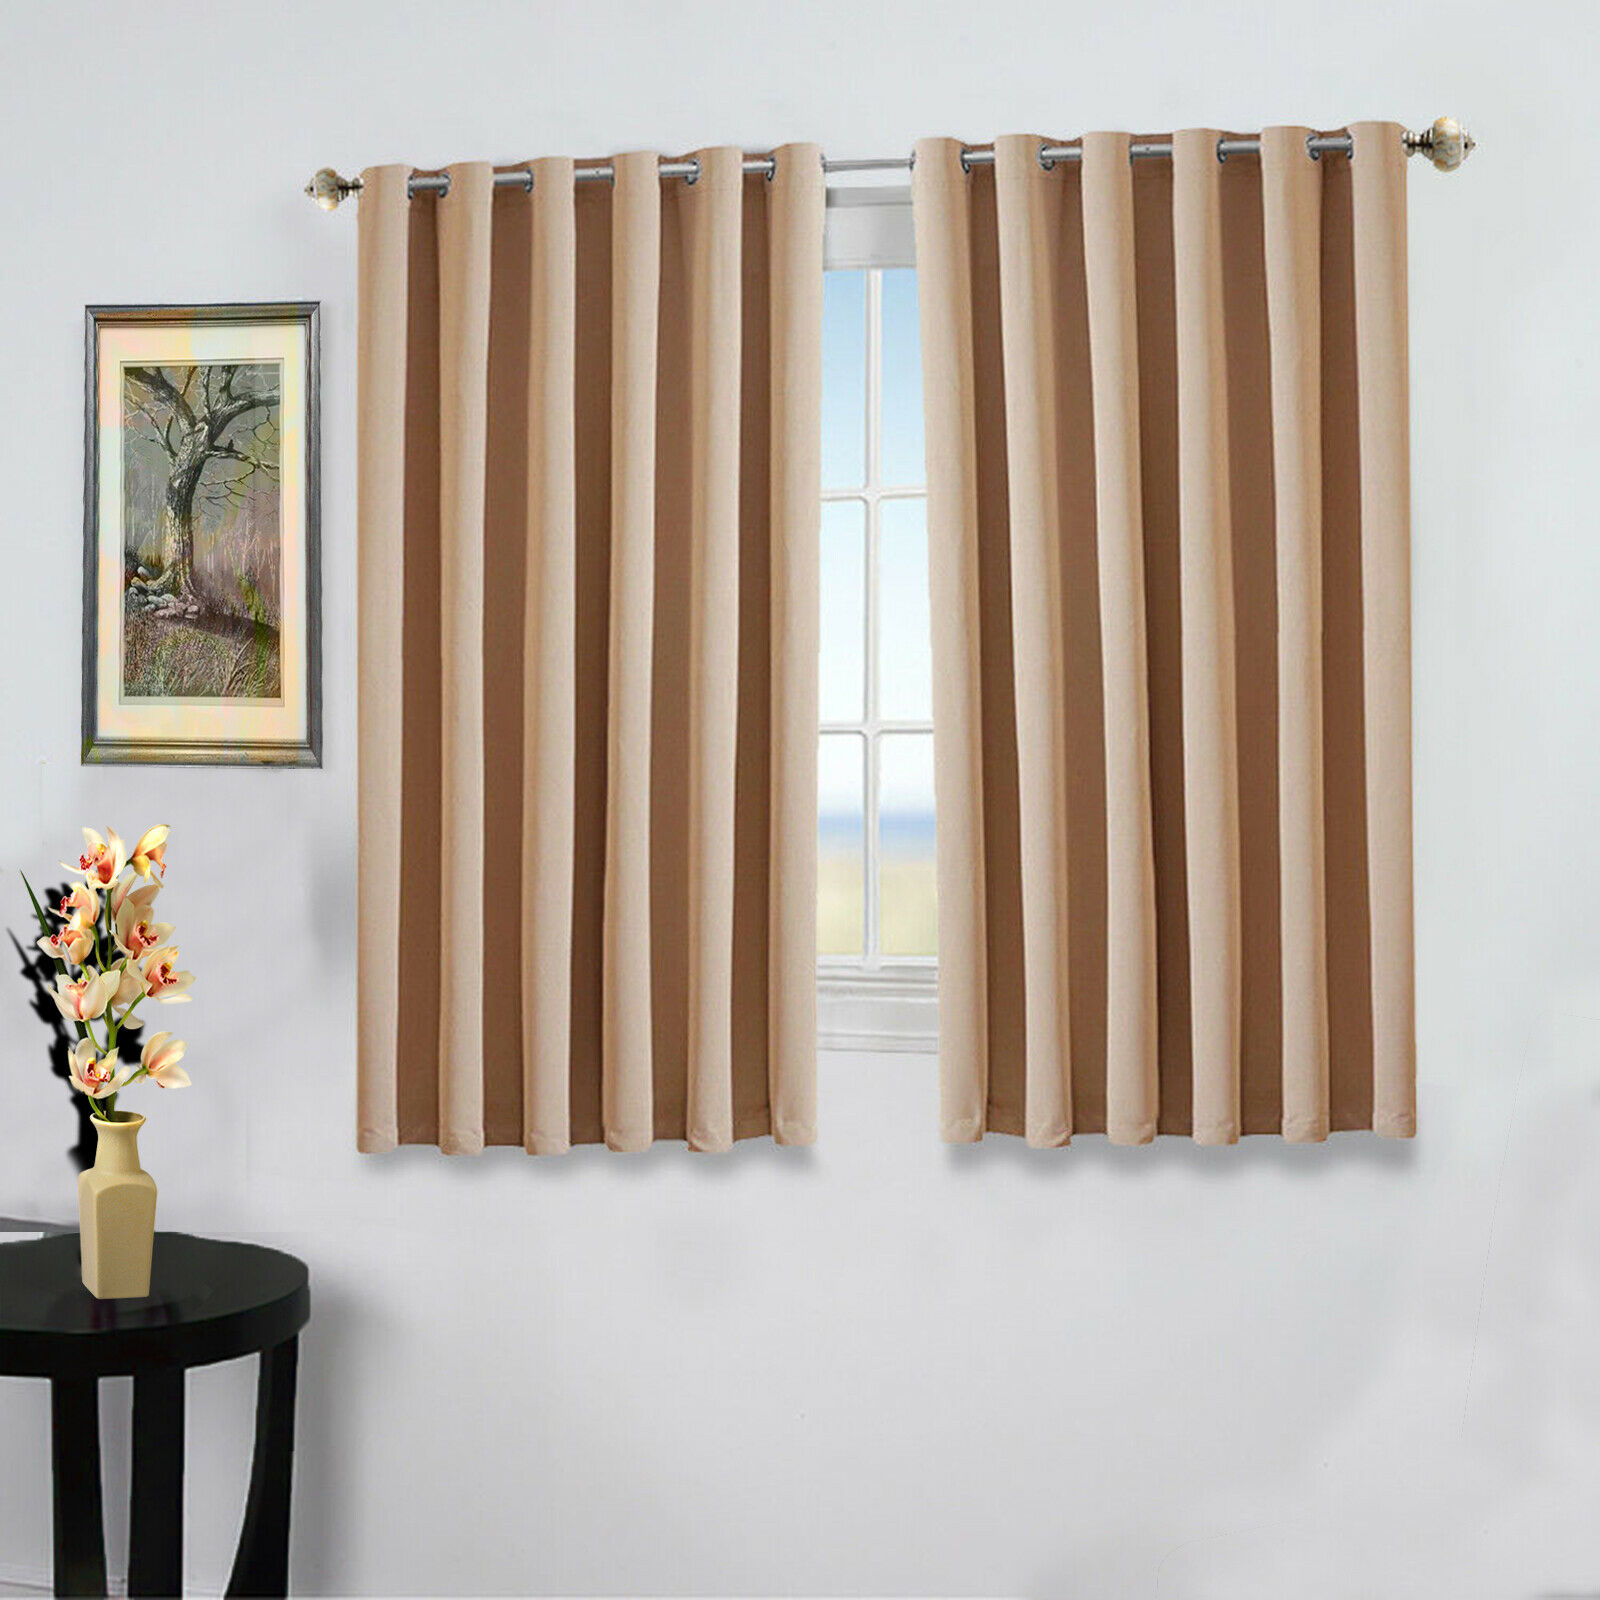 Details About New Pair Of Eyelet Thermal Insulated Blackout Curtains For Short Windows Kitchen For Thermal Insulated Blackout Curtain Pairs (View 14 of 30)